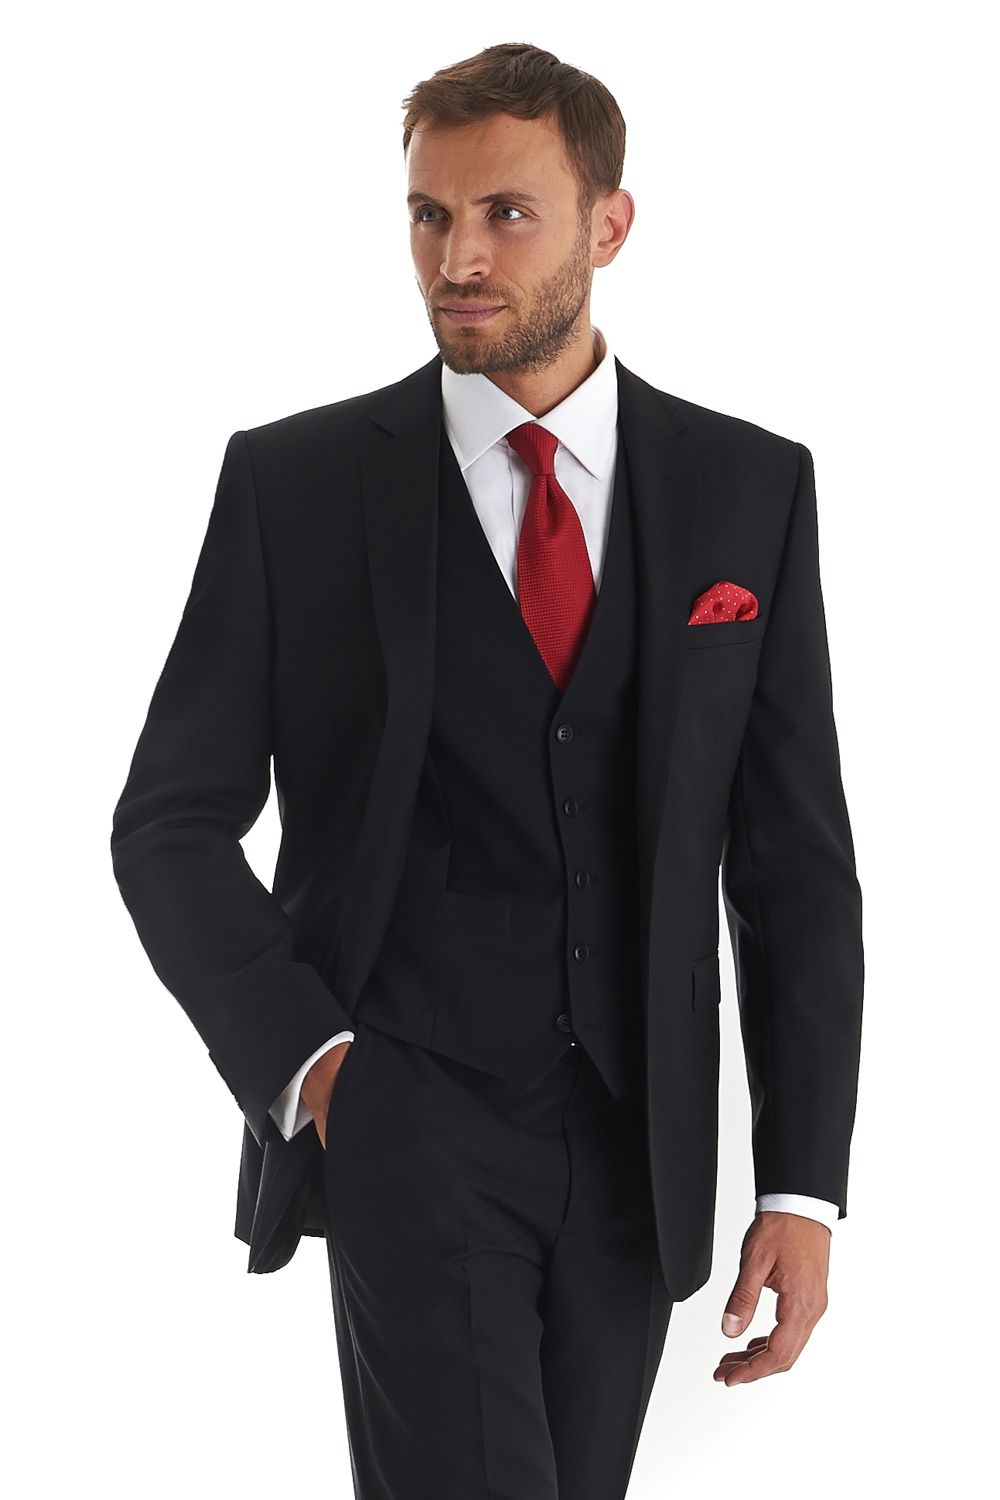 men black suit - Google Search | Black Suit | Pinterest | Wool ...